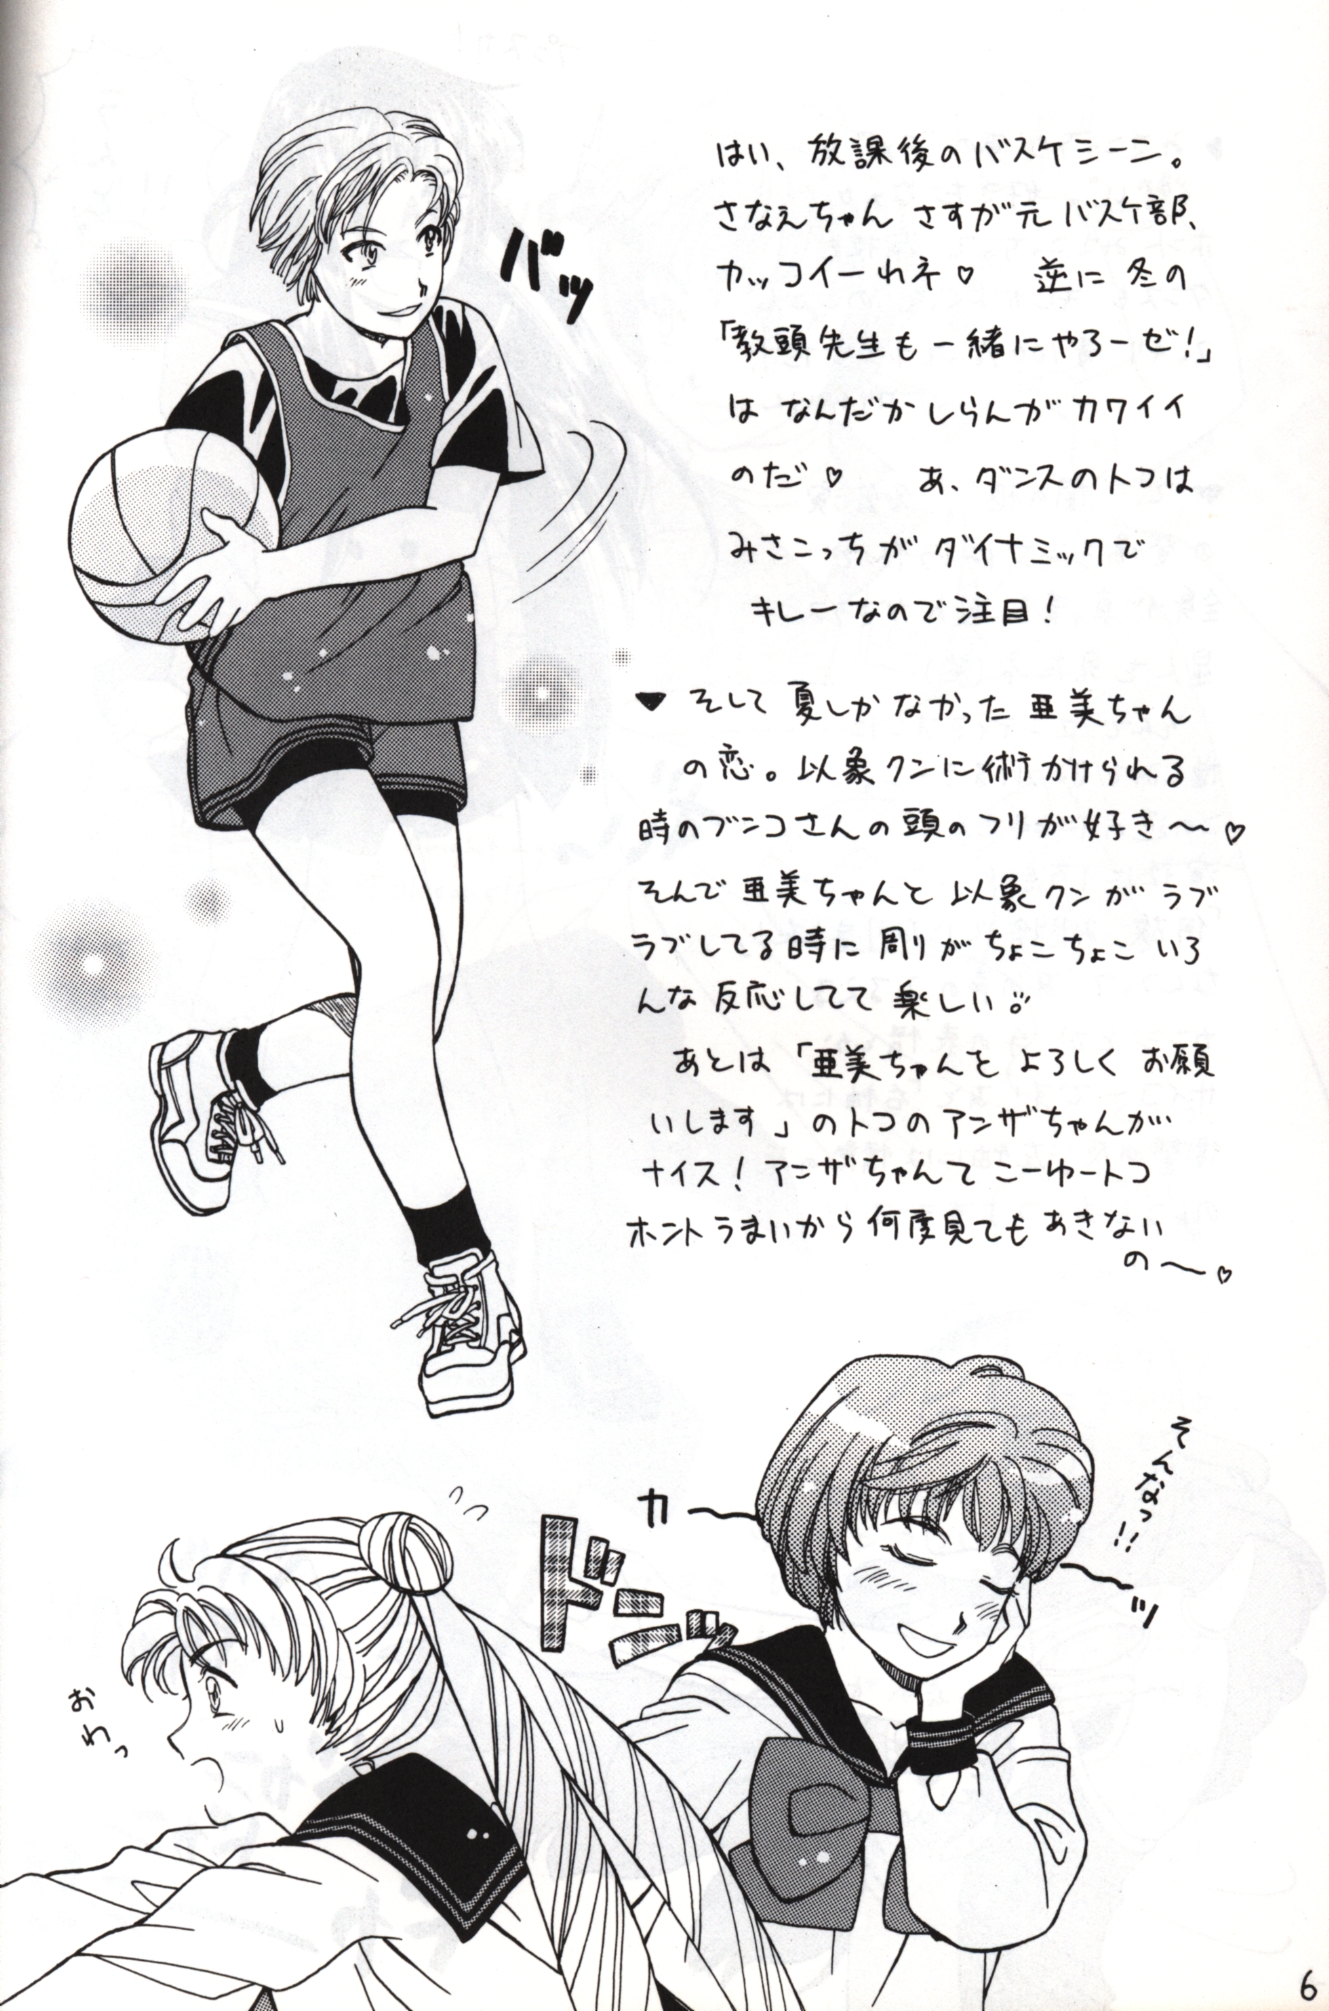 Doujinshi - Sailor Moon / Tomoe Hotaru (Sailor Saturn) & Mizuno Ami (Sailor Mercury) (MUSICAL PLUS 2) / よもぎや